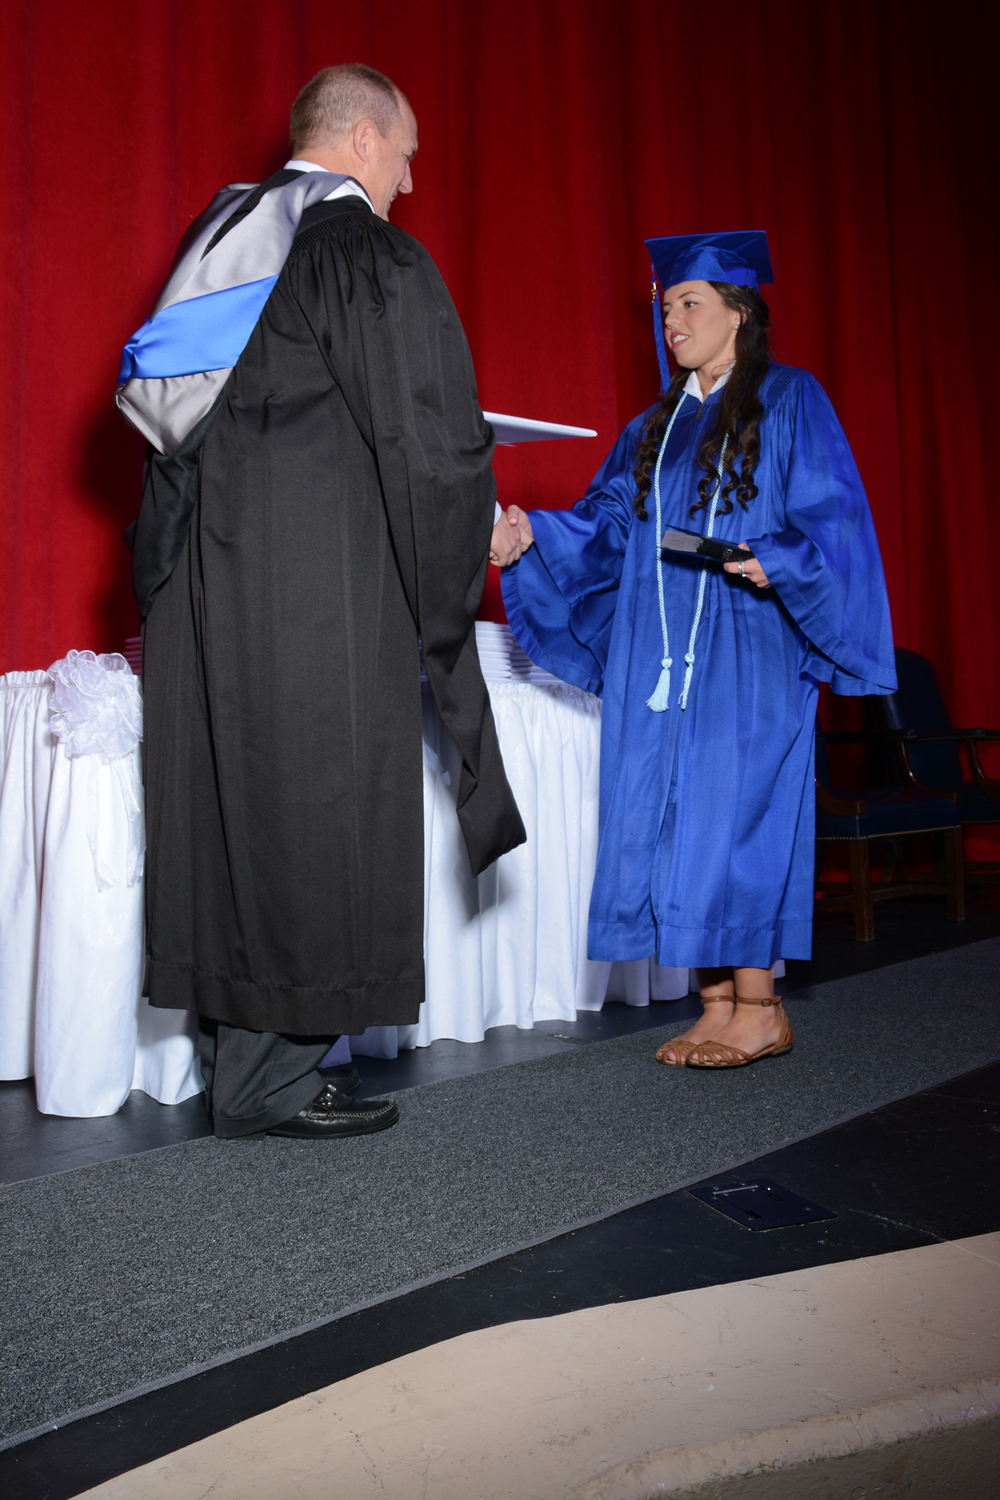 May16 GraduationPhotos37.jpg